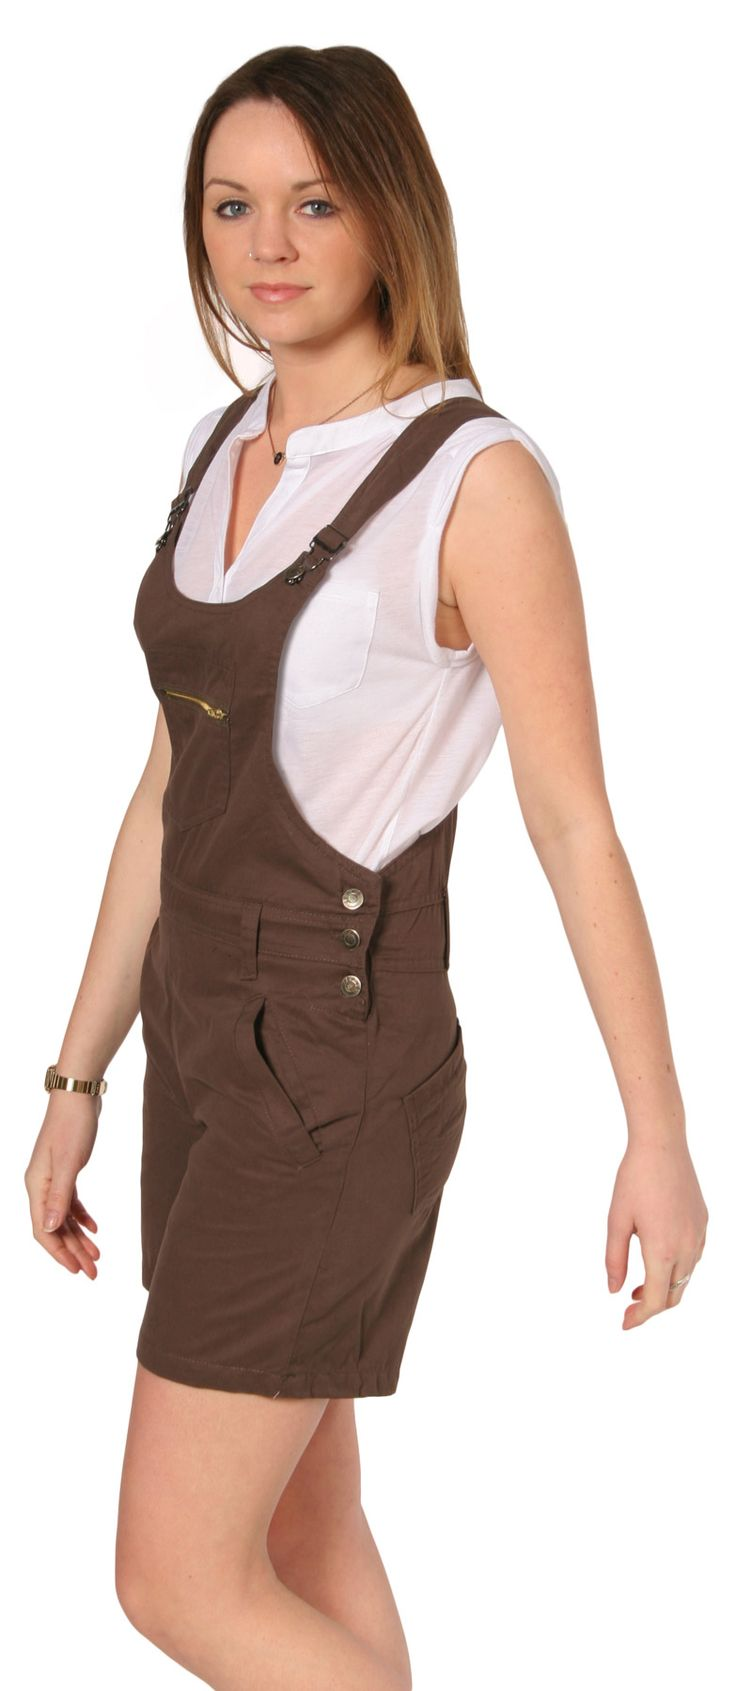 Womens Brown Dungaree Shorts from Dungarees Online - only £19.99. #shortalls #dungarees #dungareeshorts